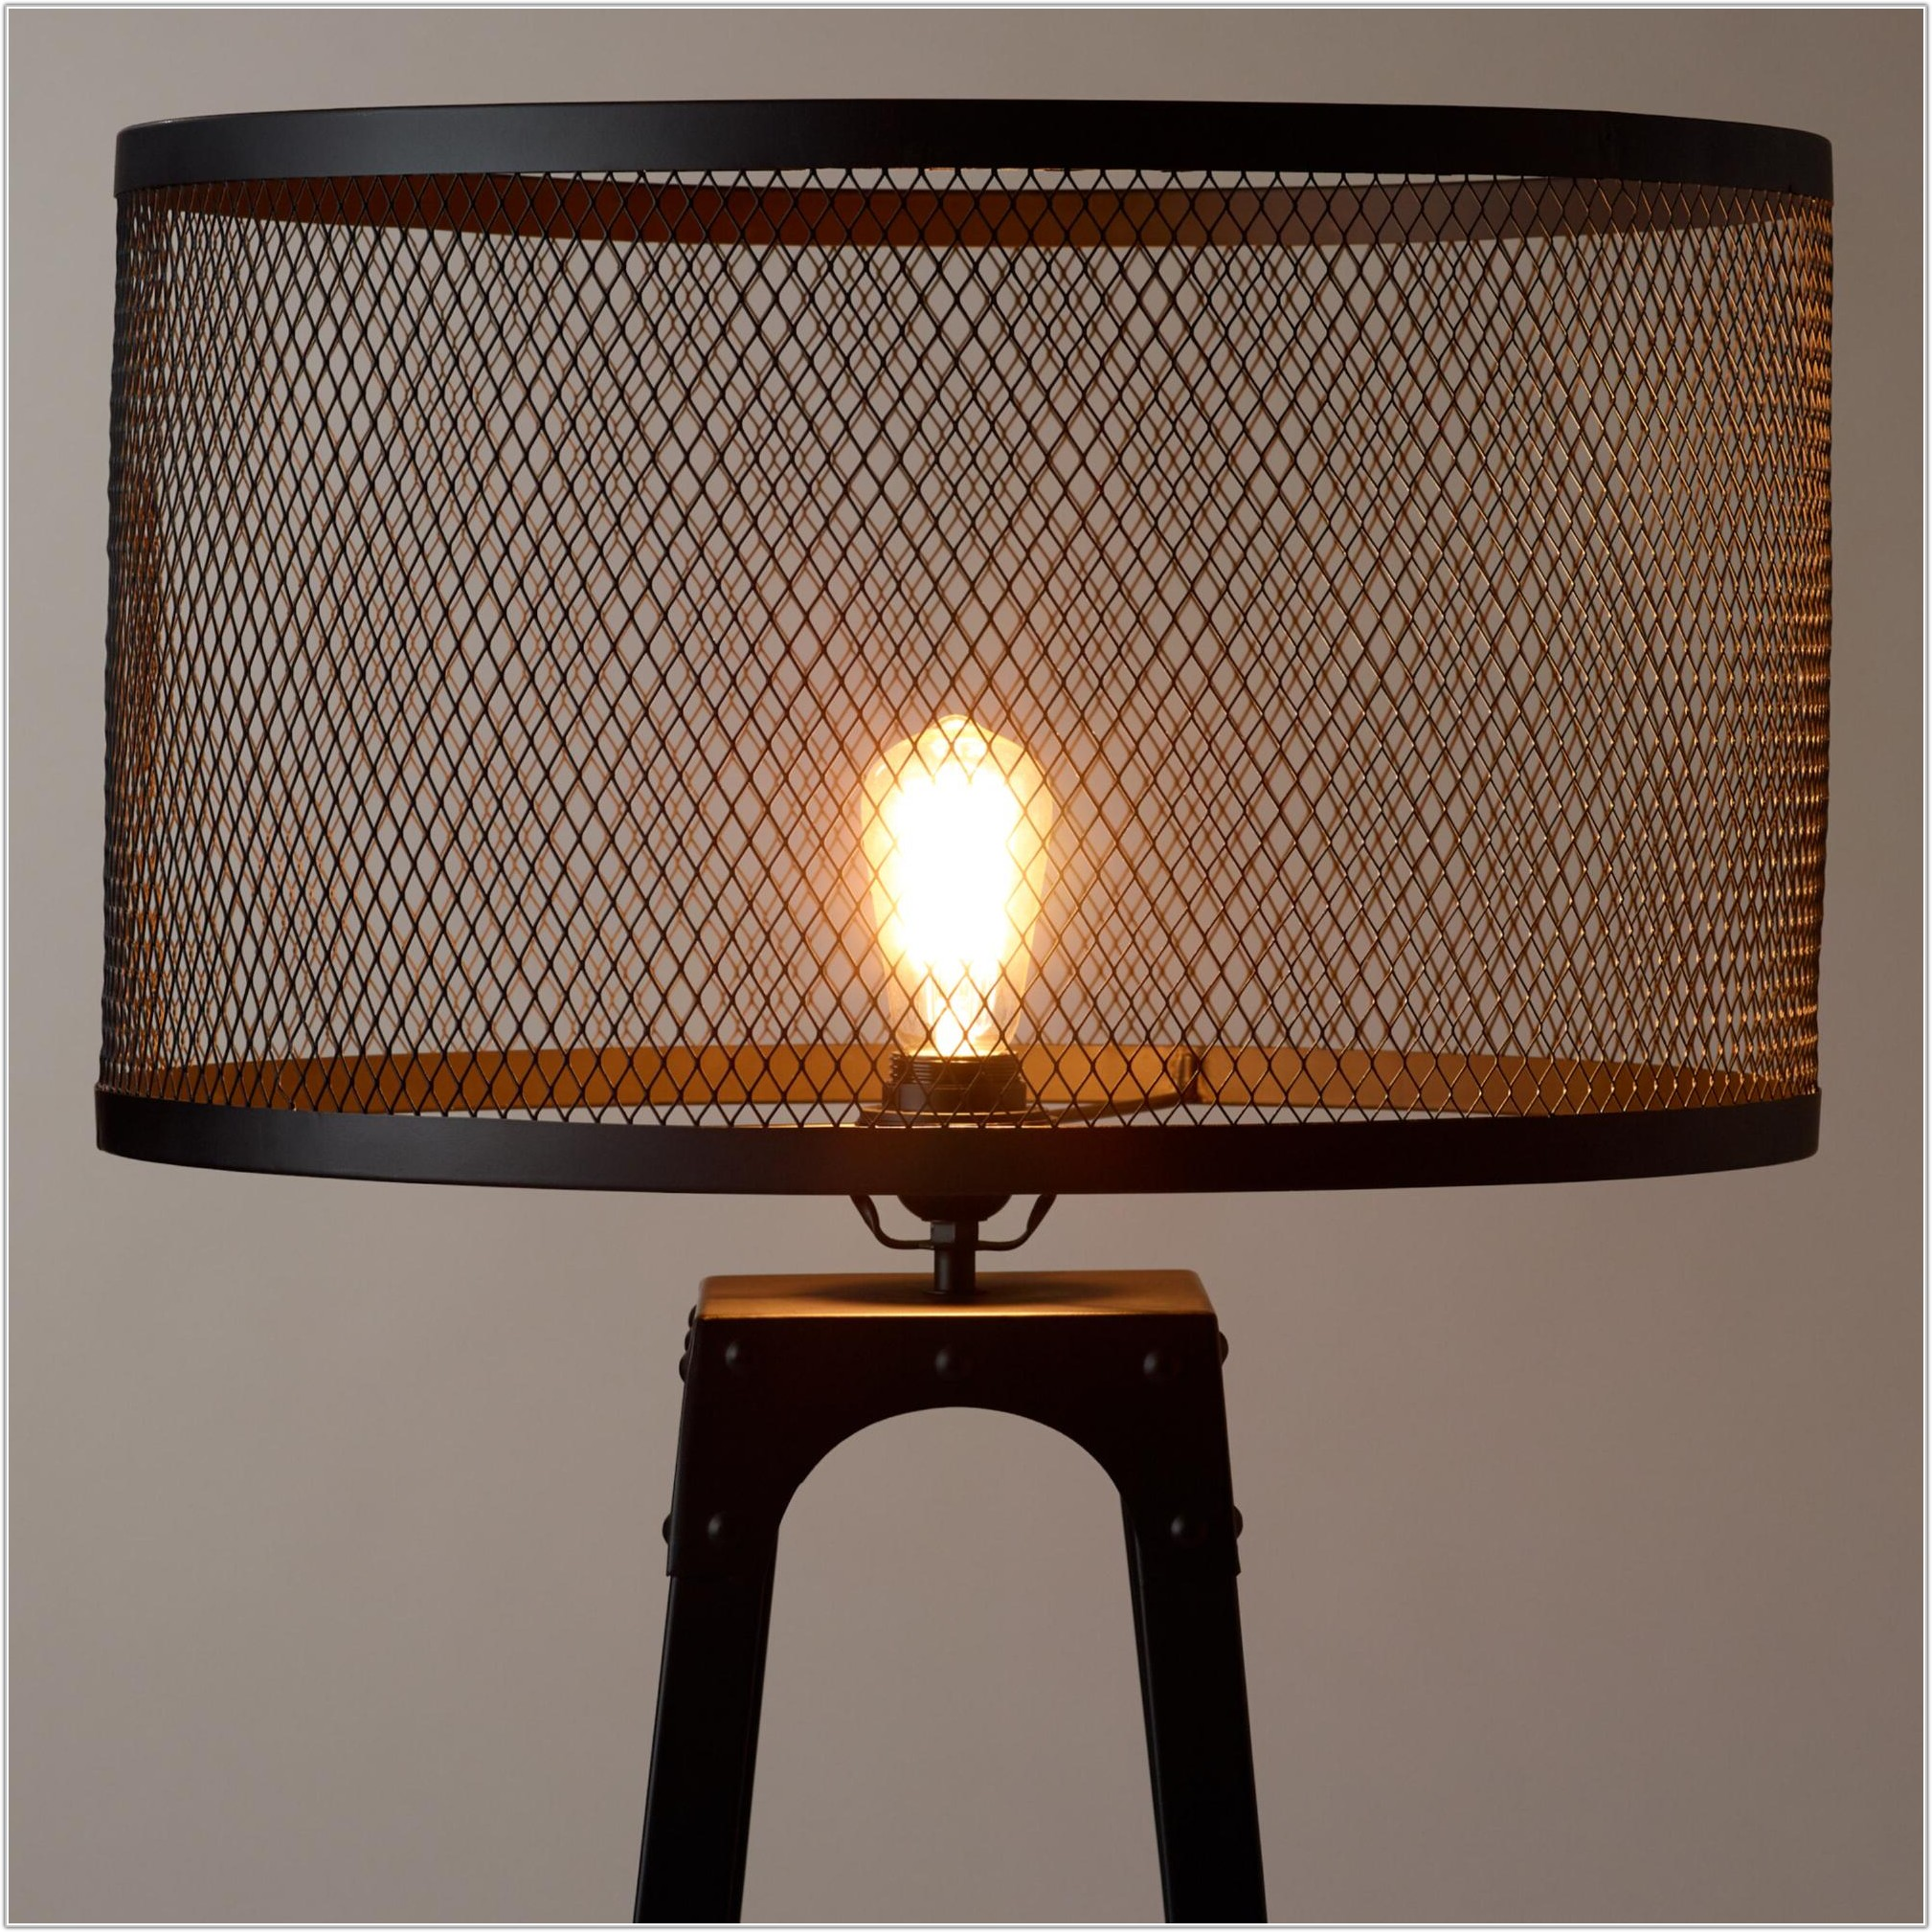 Lamp Shade For Floor Lamp